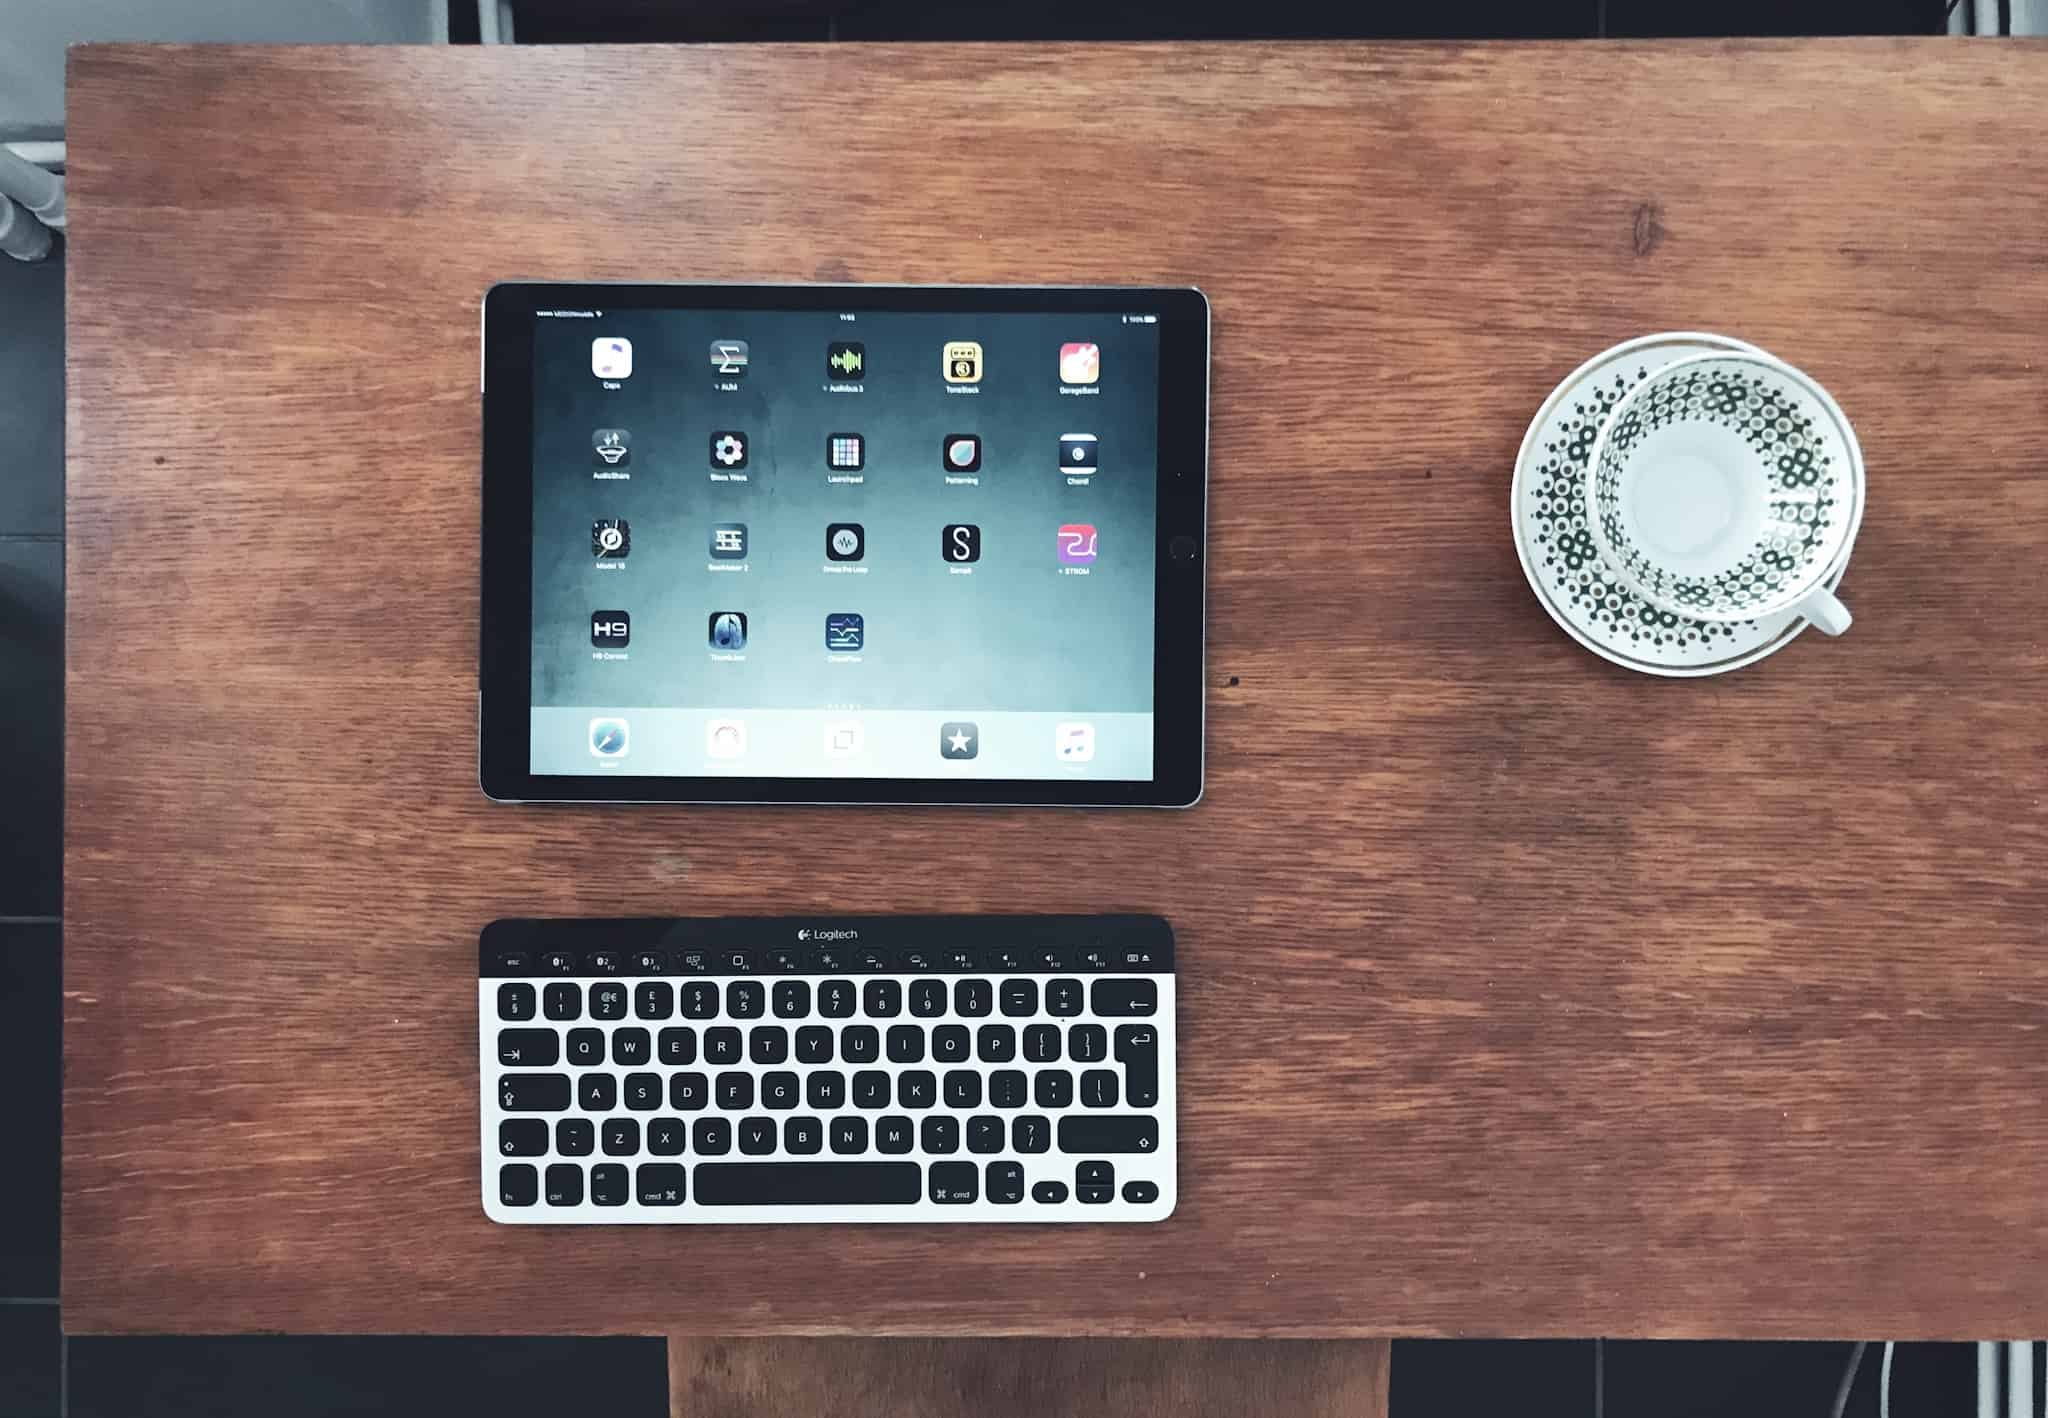 A keyboard is easy to connect, and makes your iPad way better.